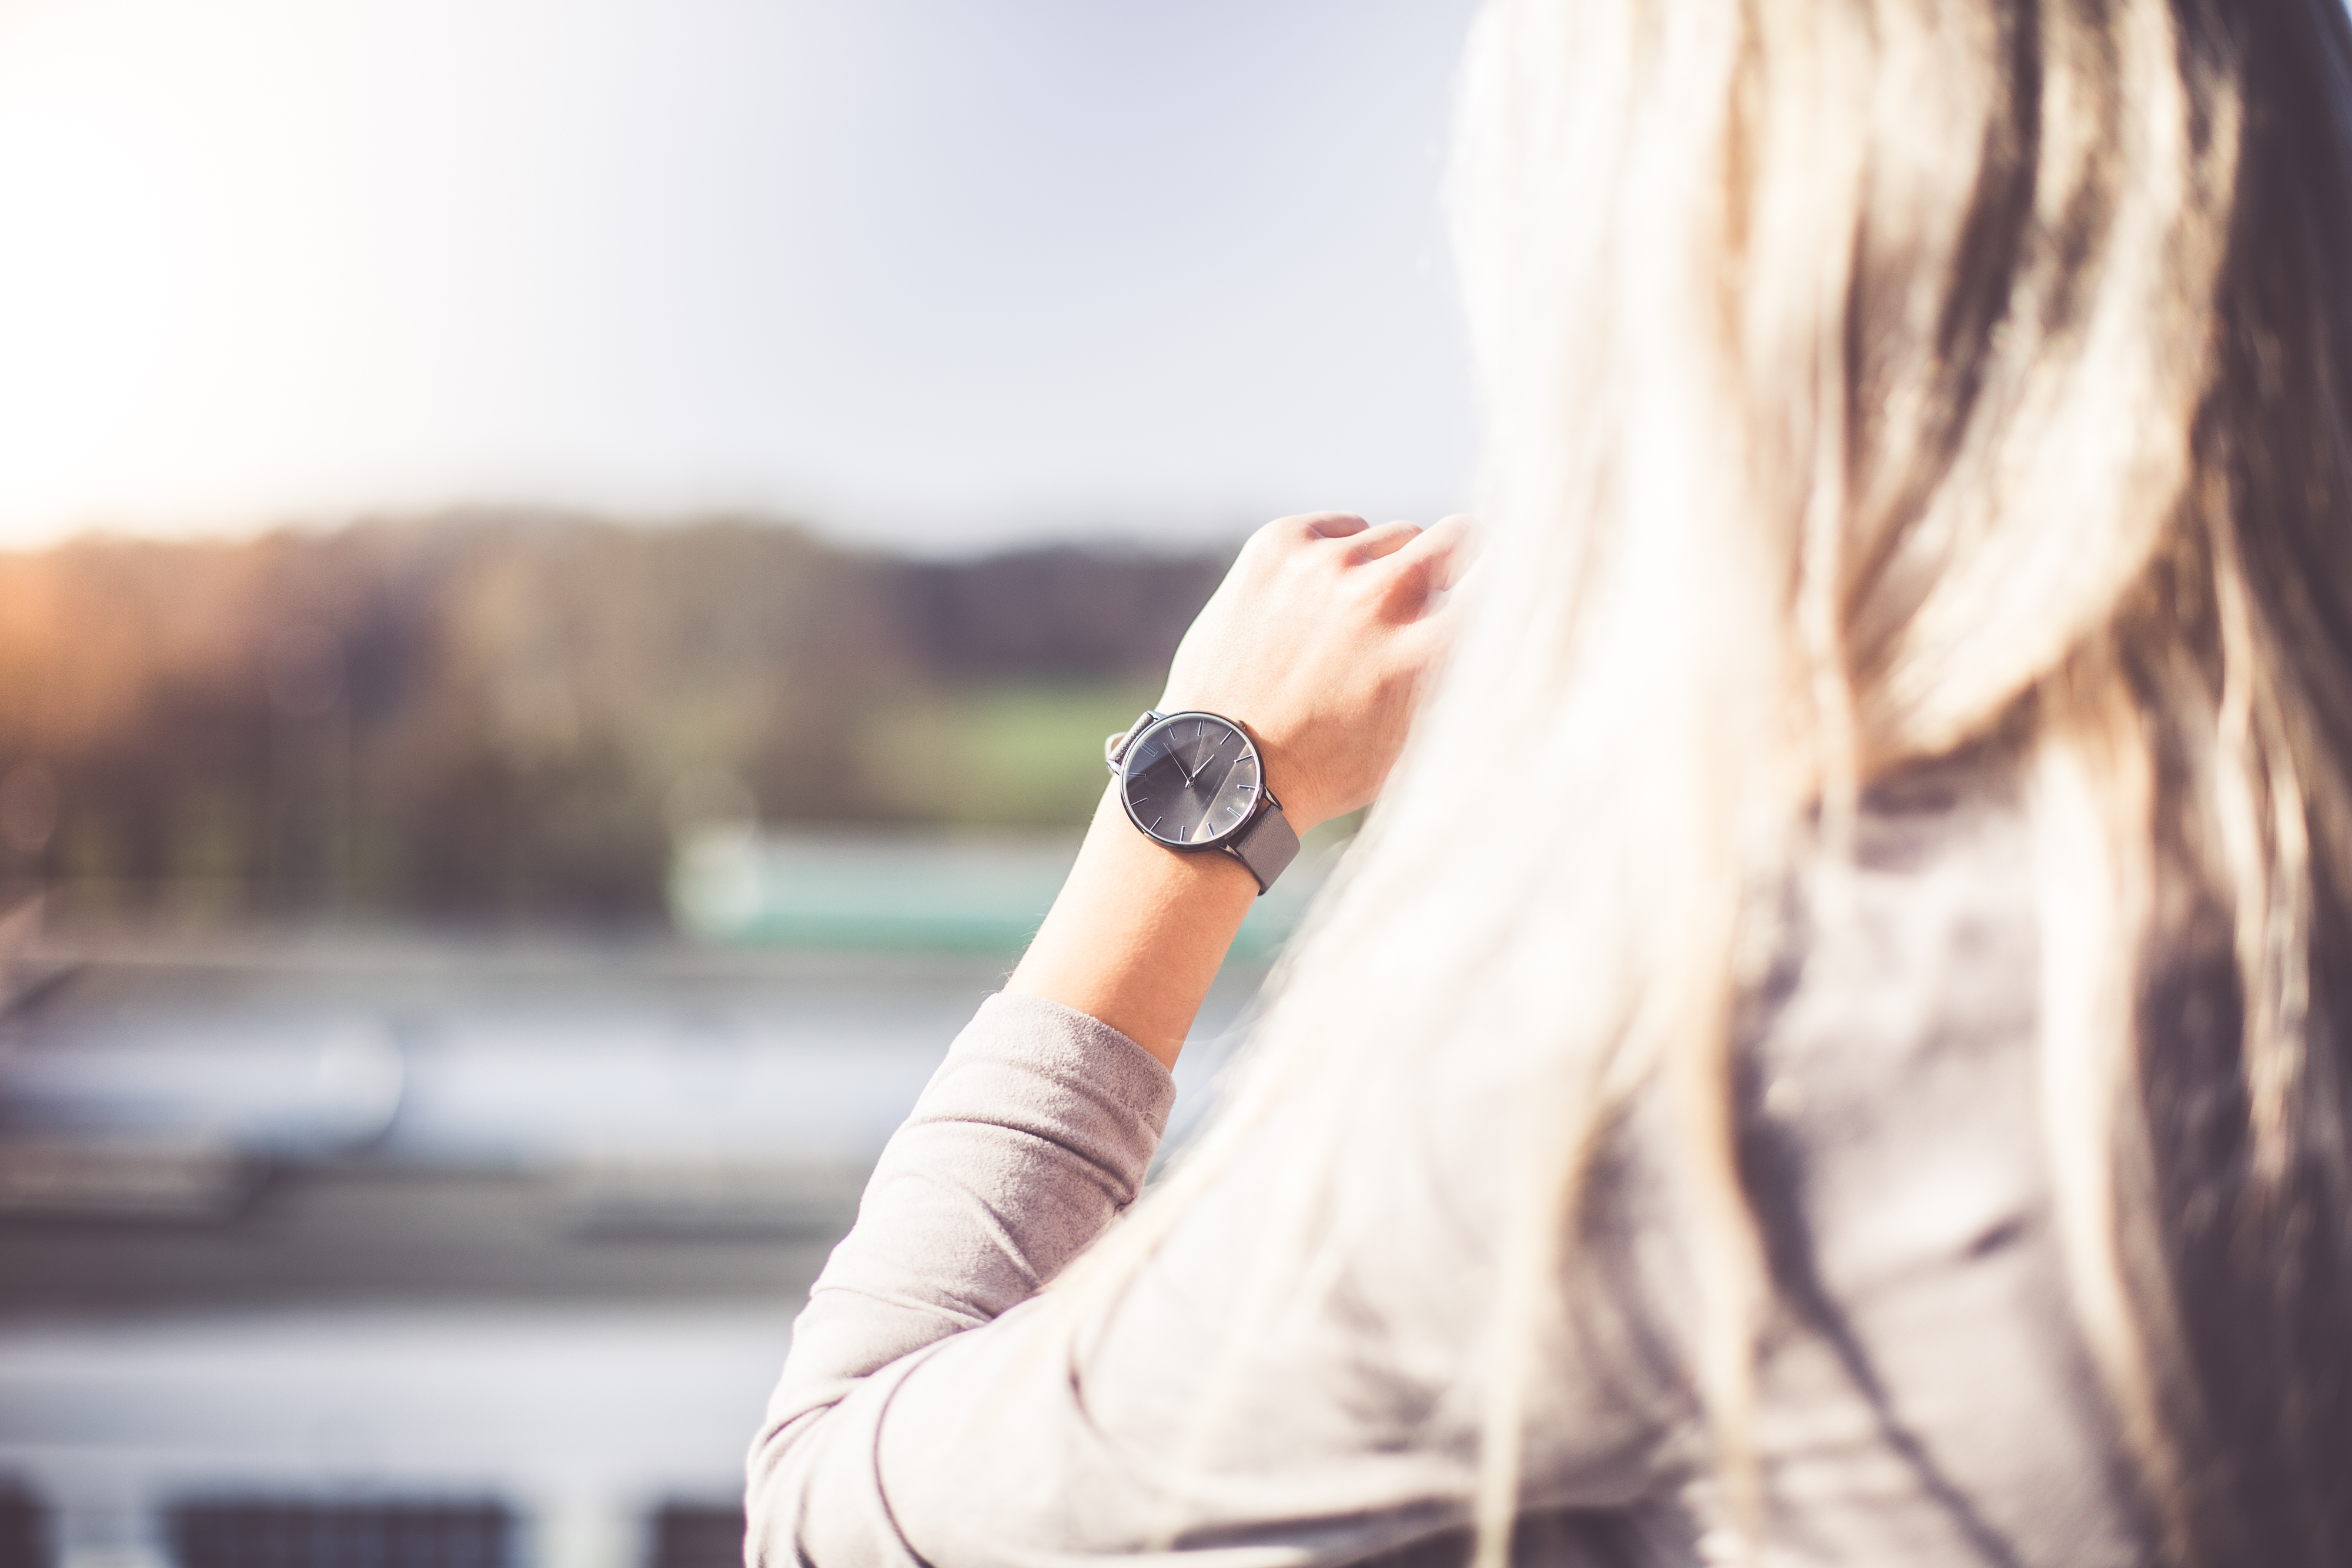 young-woman-with-gray-fashion-watches-enjoying-views-picjumbo-com